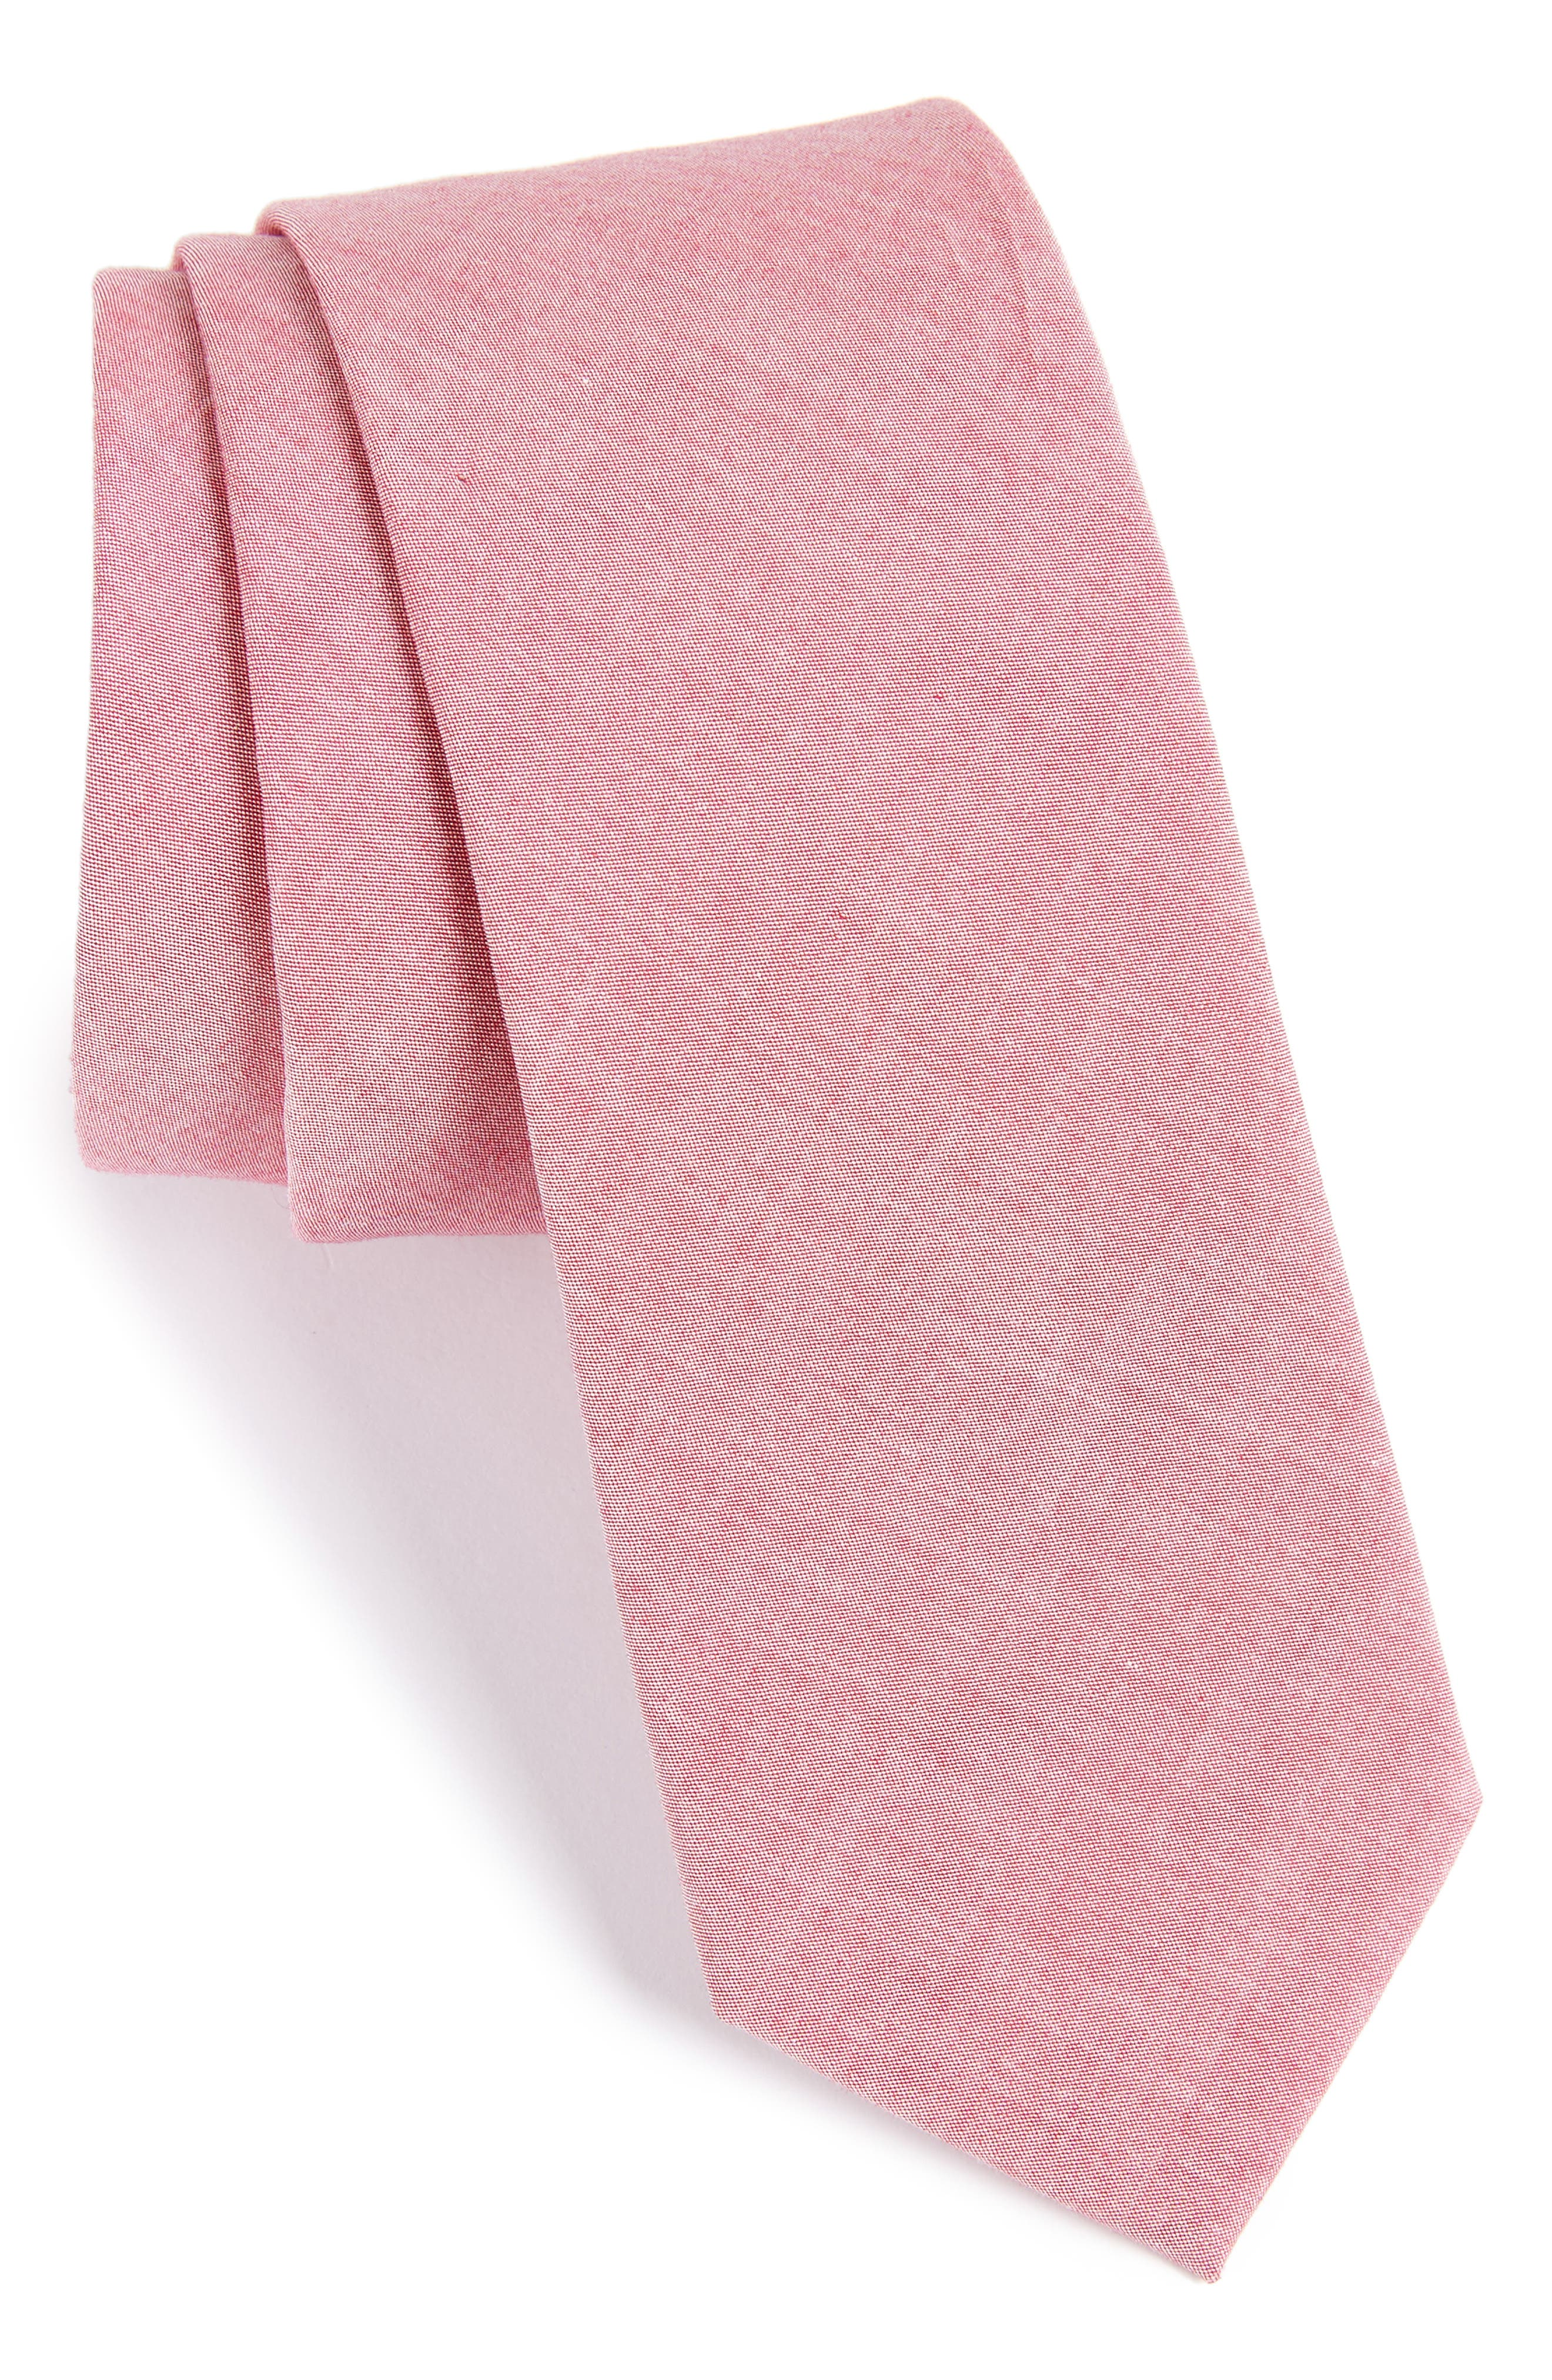 Johnson Solid Cotton Tie,                             Main thumbnail 1, color,                             600